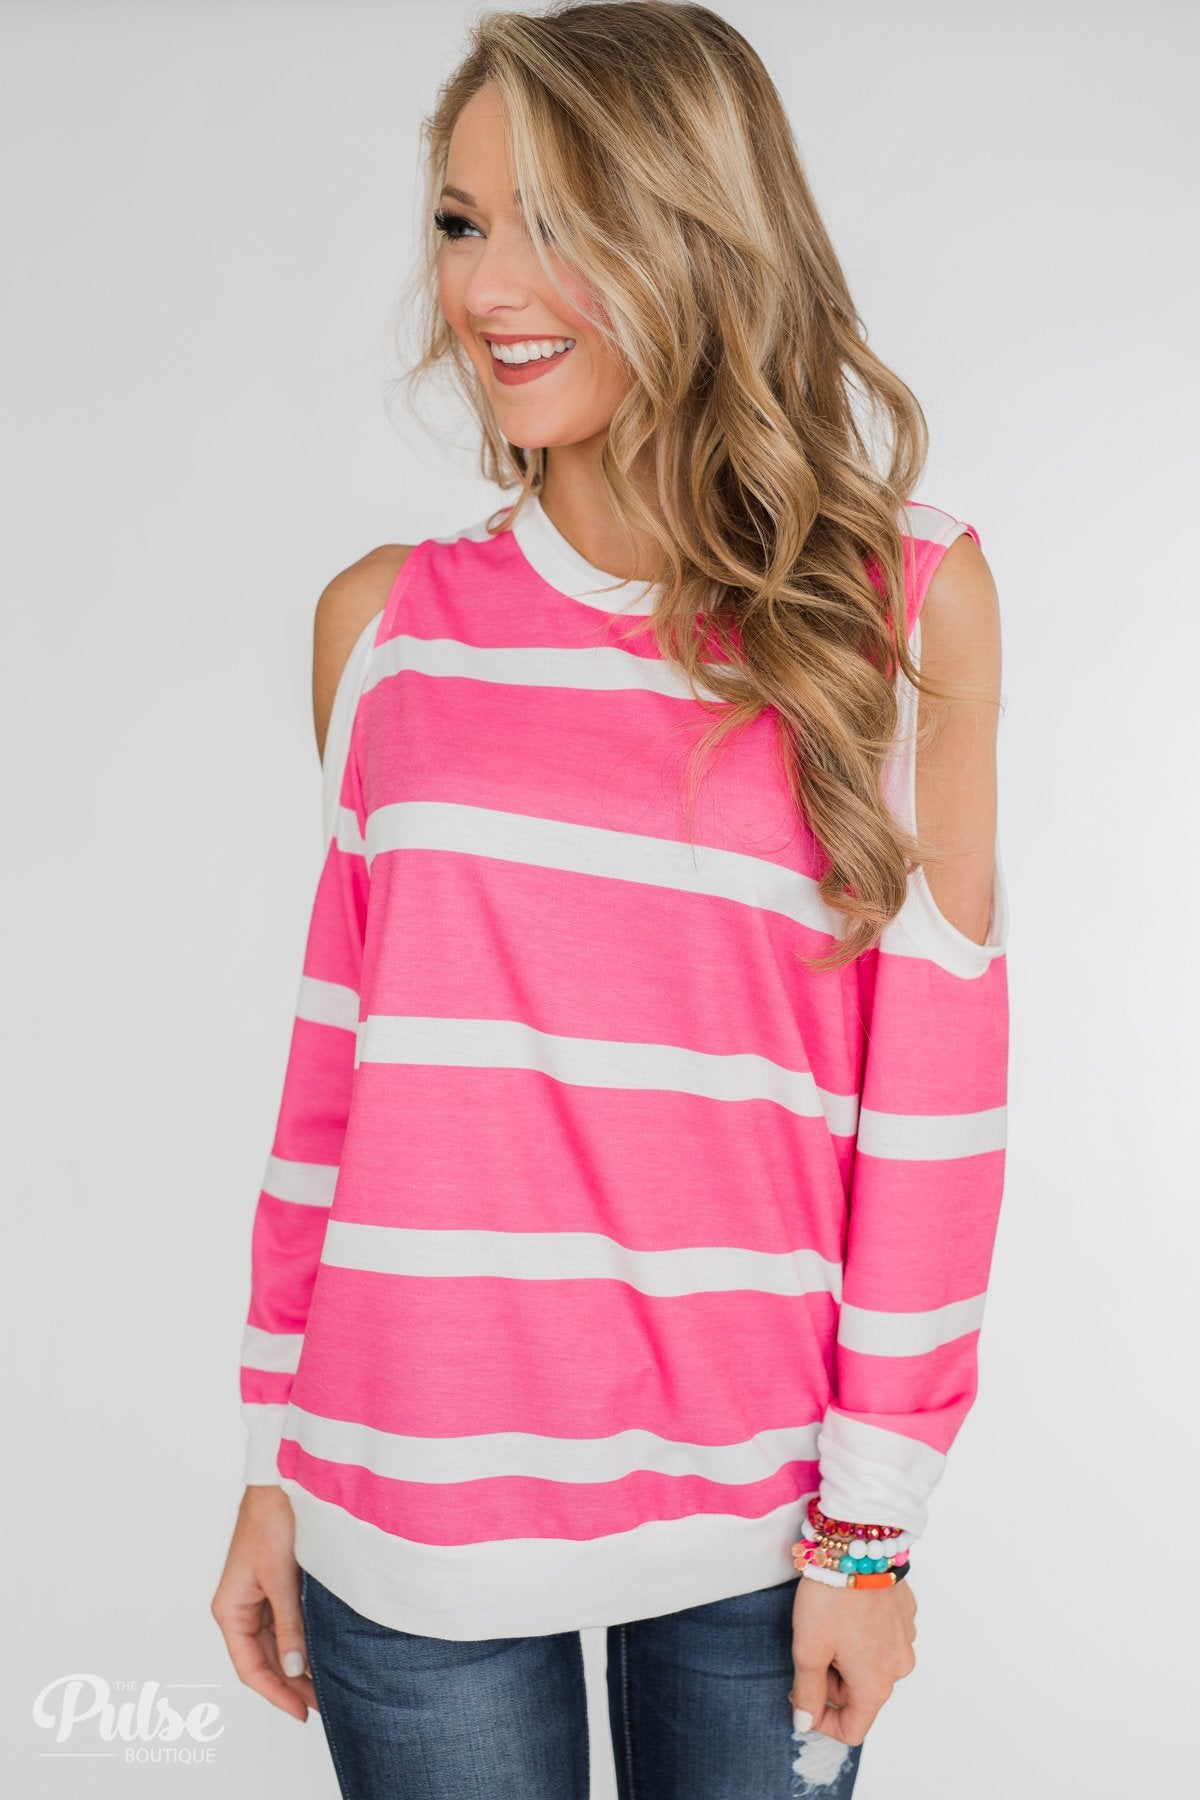 Light Up My World Striped Cold Shoulder Top- Hot Pink